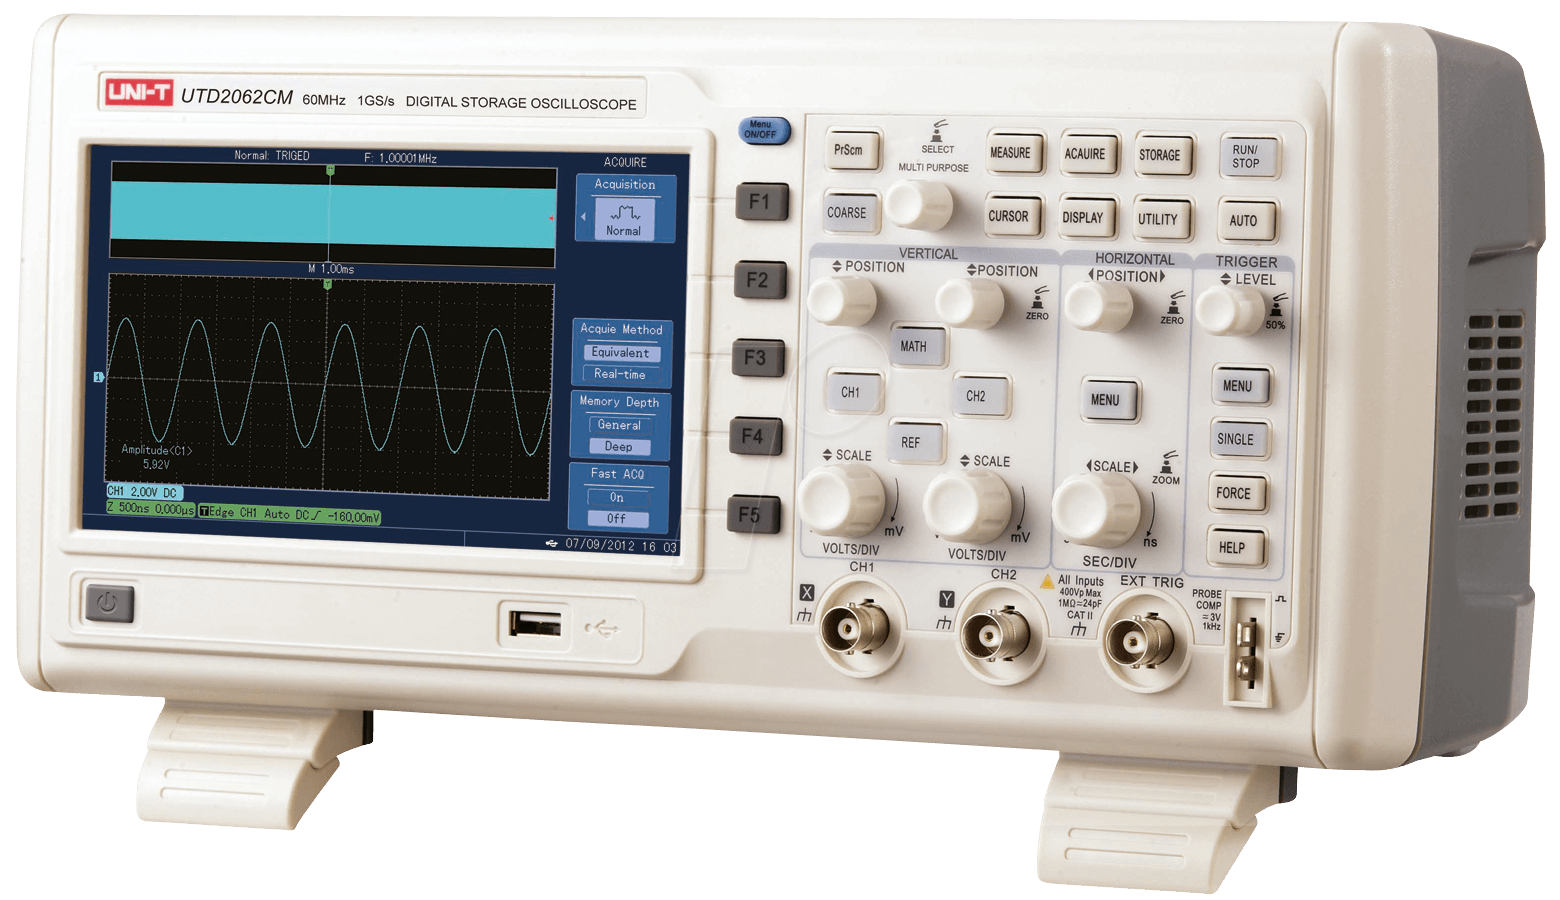 Digital Storage Oscilloscope : Utd cm digital storage oscilloscope mhz gs s